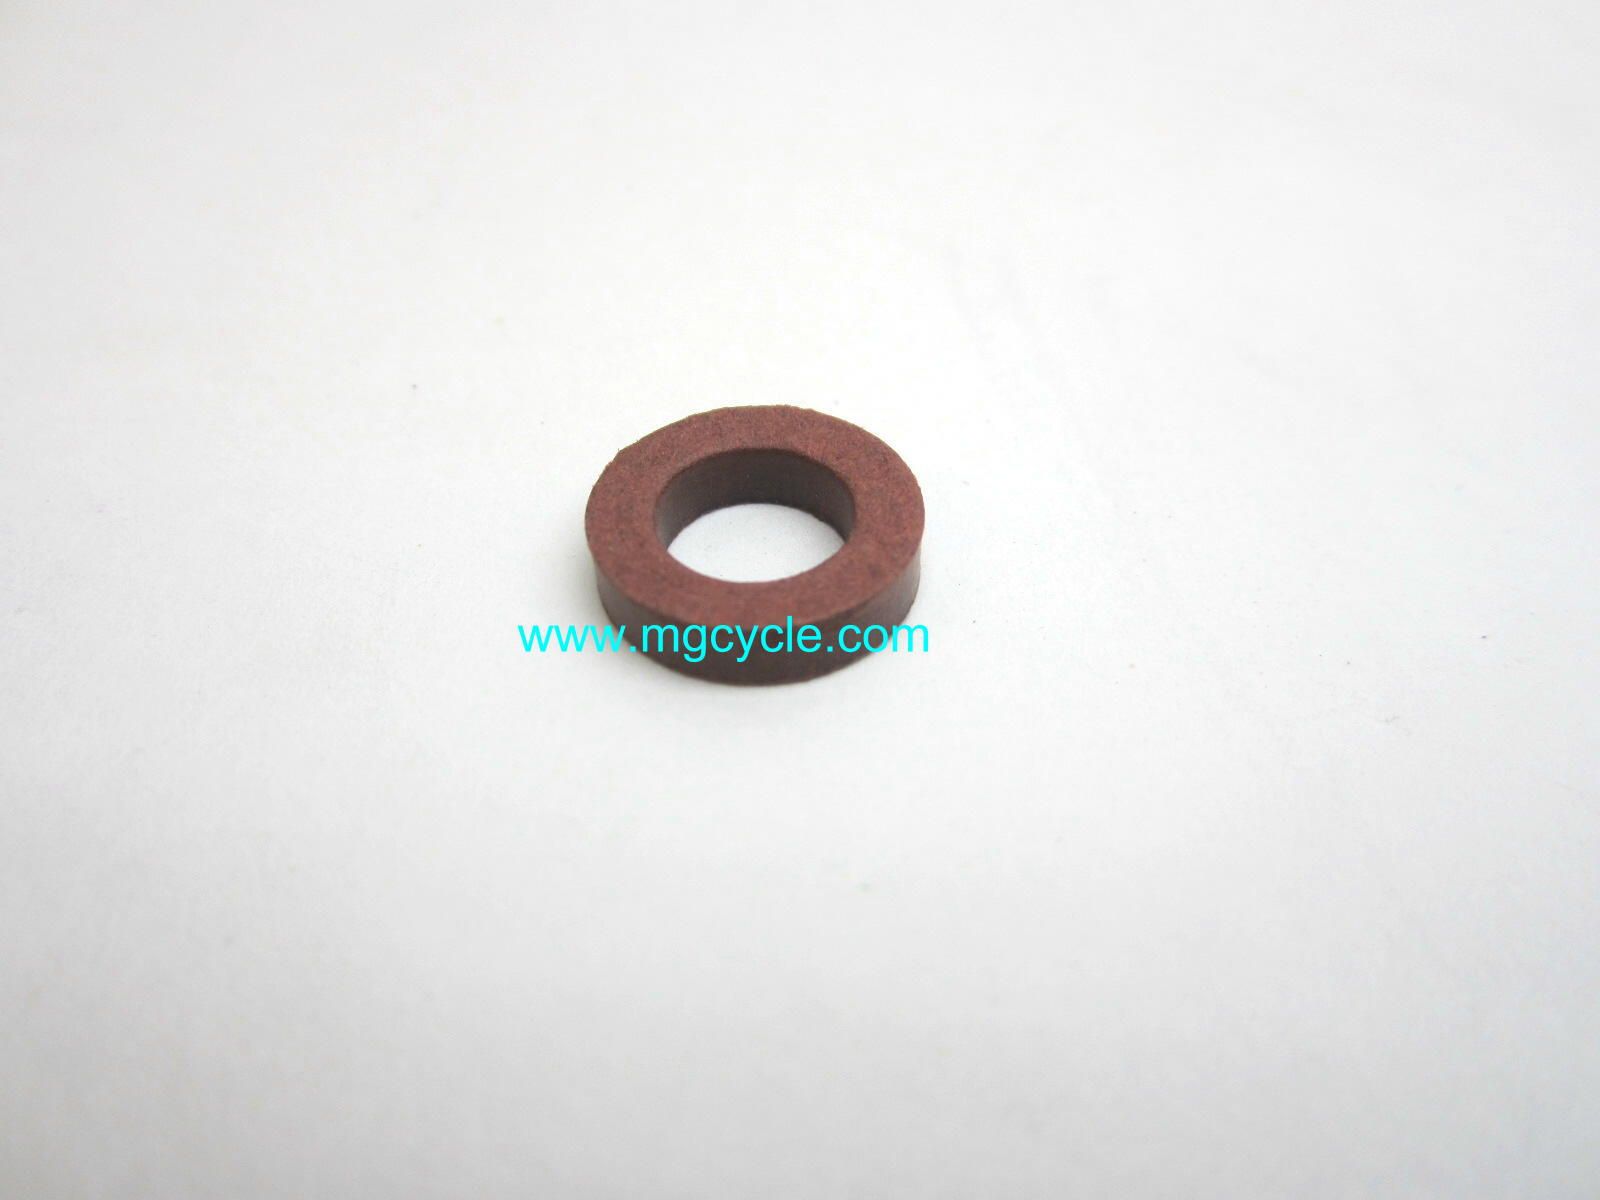 Gasket for carburetor manifold bolt, thick fiber washer